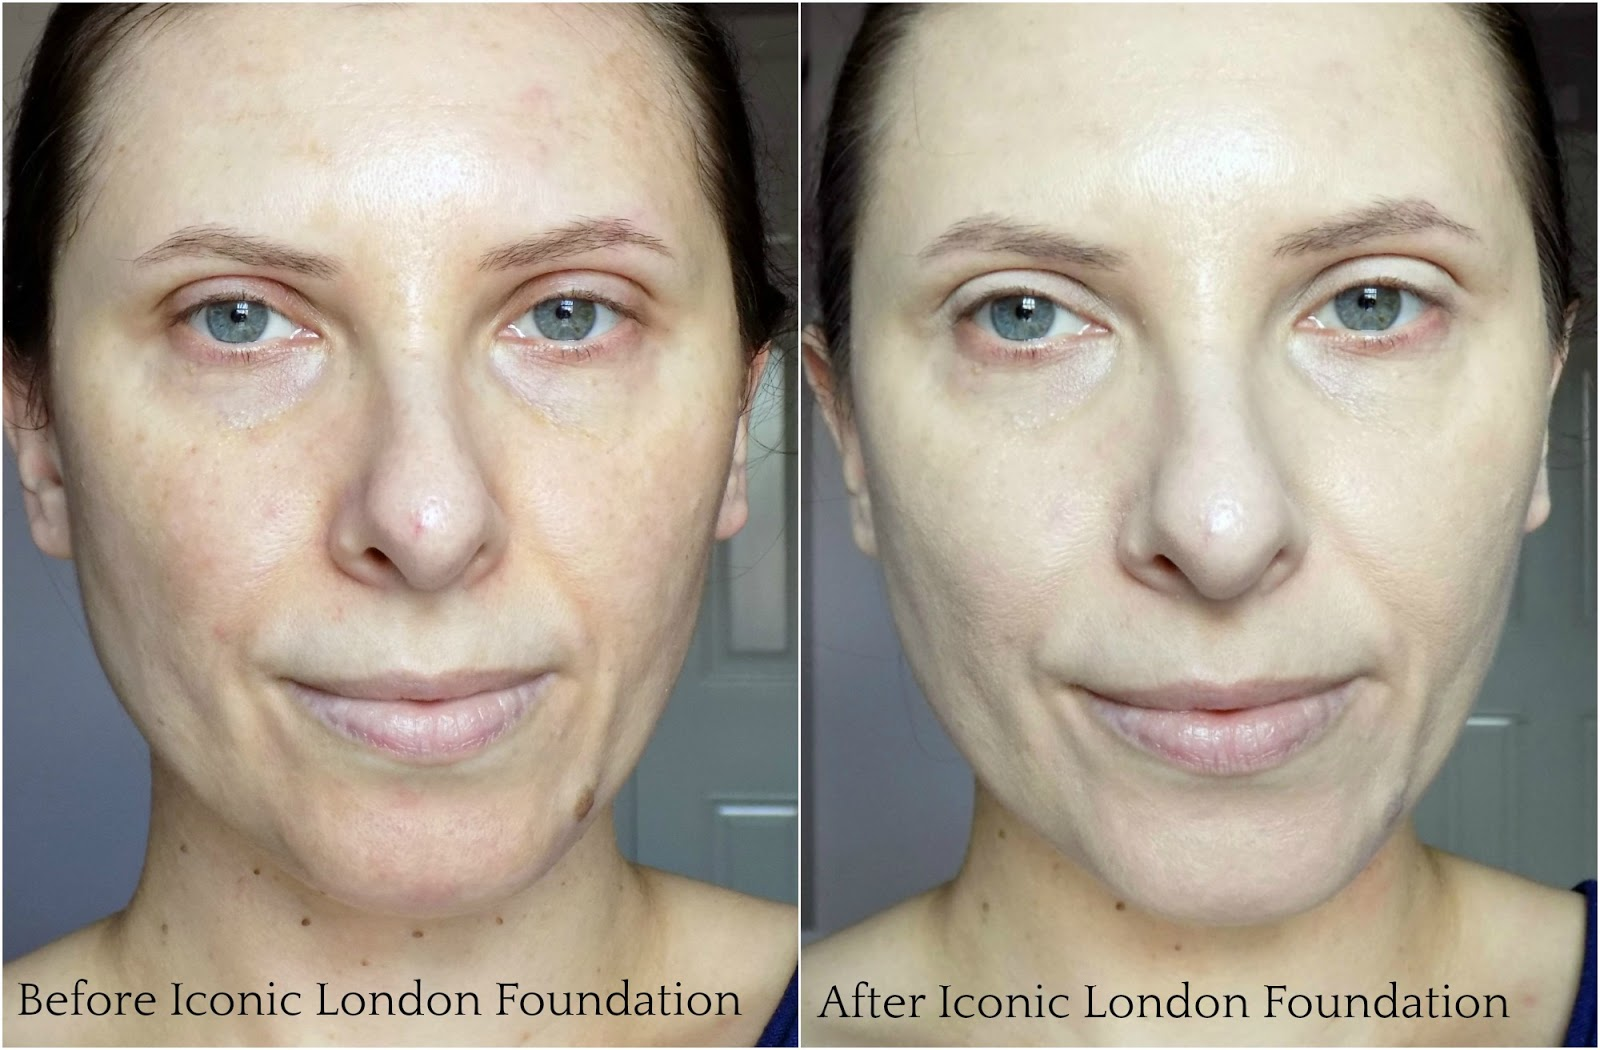 Iconic-london-foundation-stick-before-and-after